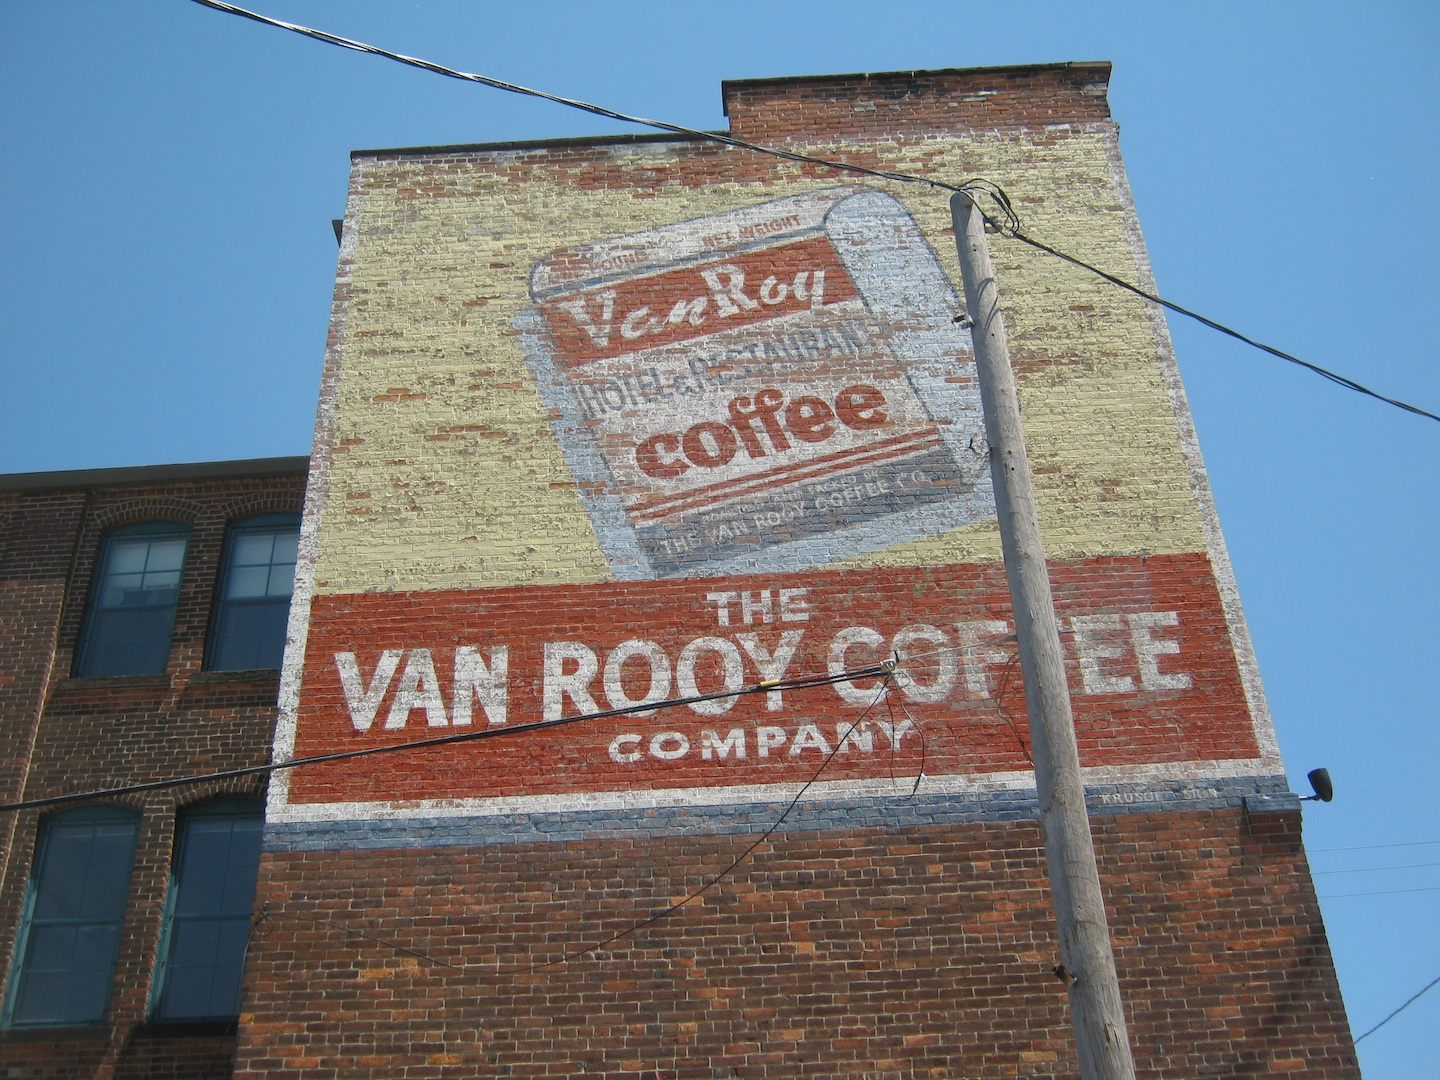 There Used To Be Another Memorable Van Roy Coffee Sign On This Same Side Of The Building But At Northern End Closest Sway